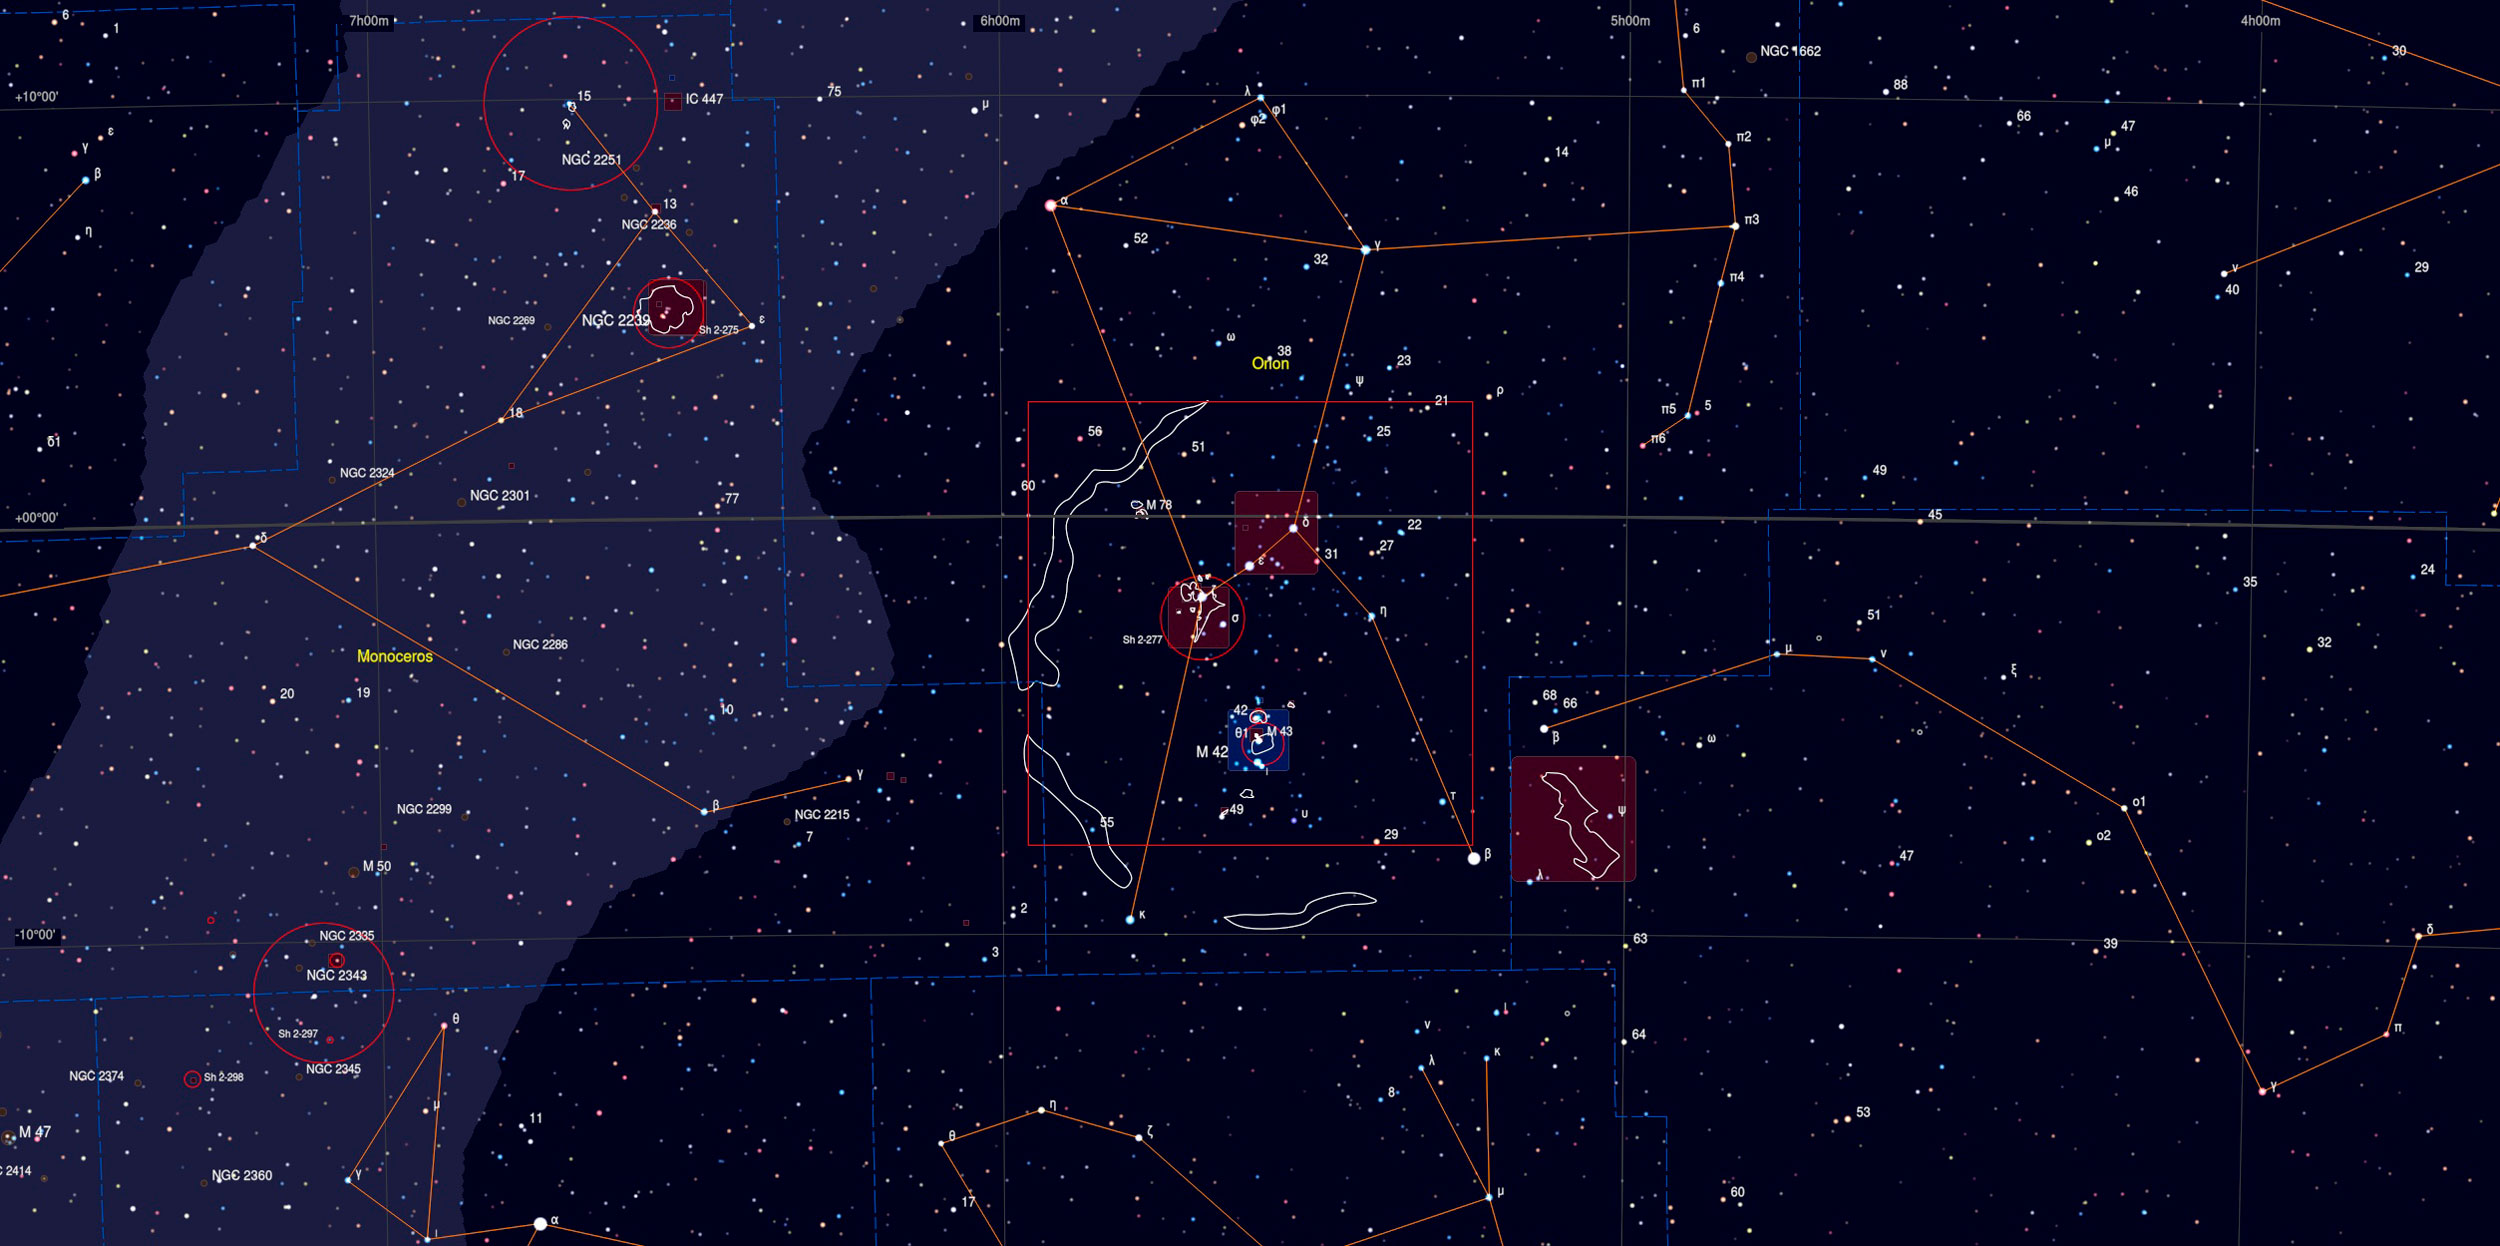 Orion Mosaic Sky Chart - Astrophotography Martin Rusterholz